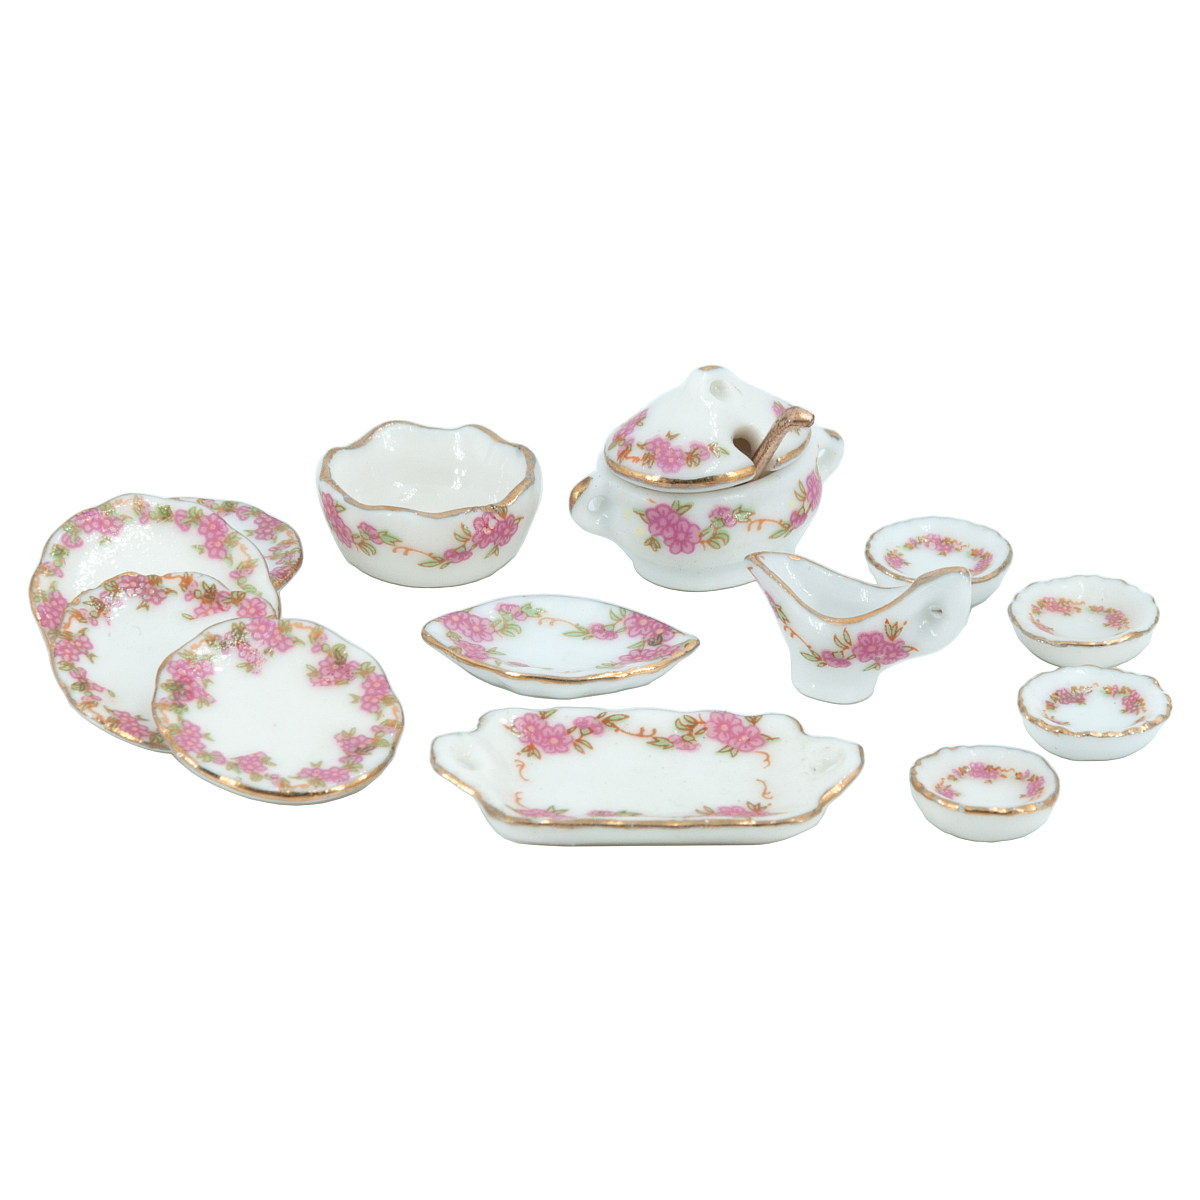 Dinner service, porcelain, floral, 13 pcs ディナーサービス 13枚セット